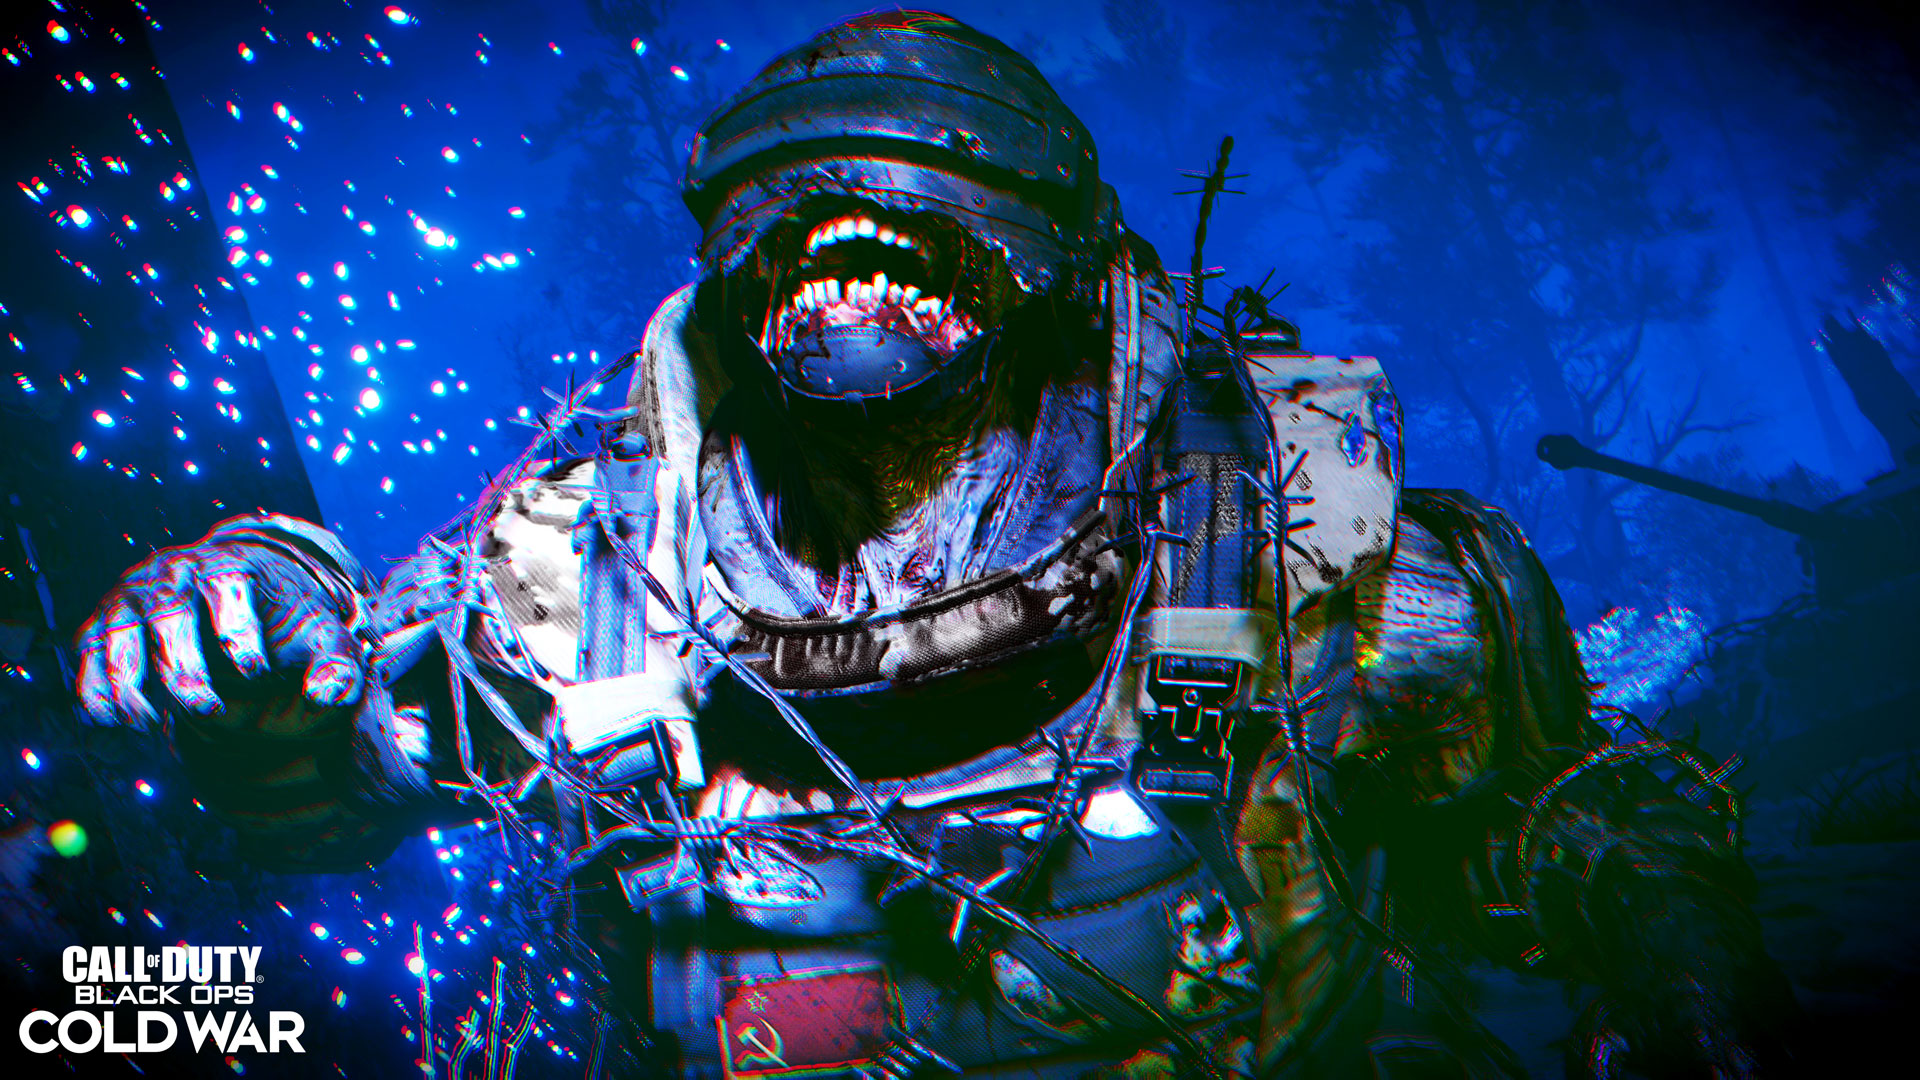 CoD: Black Ops Cold War Zombies mode revealed with new progression